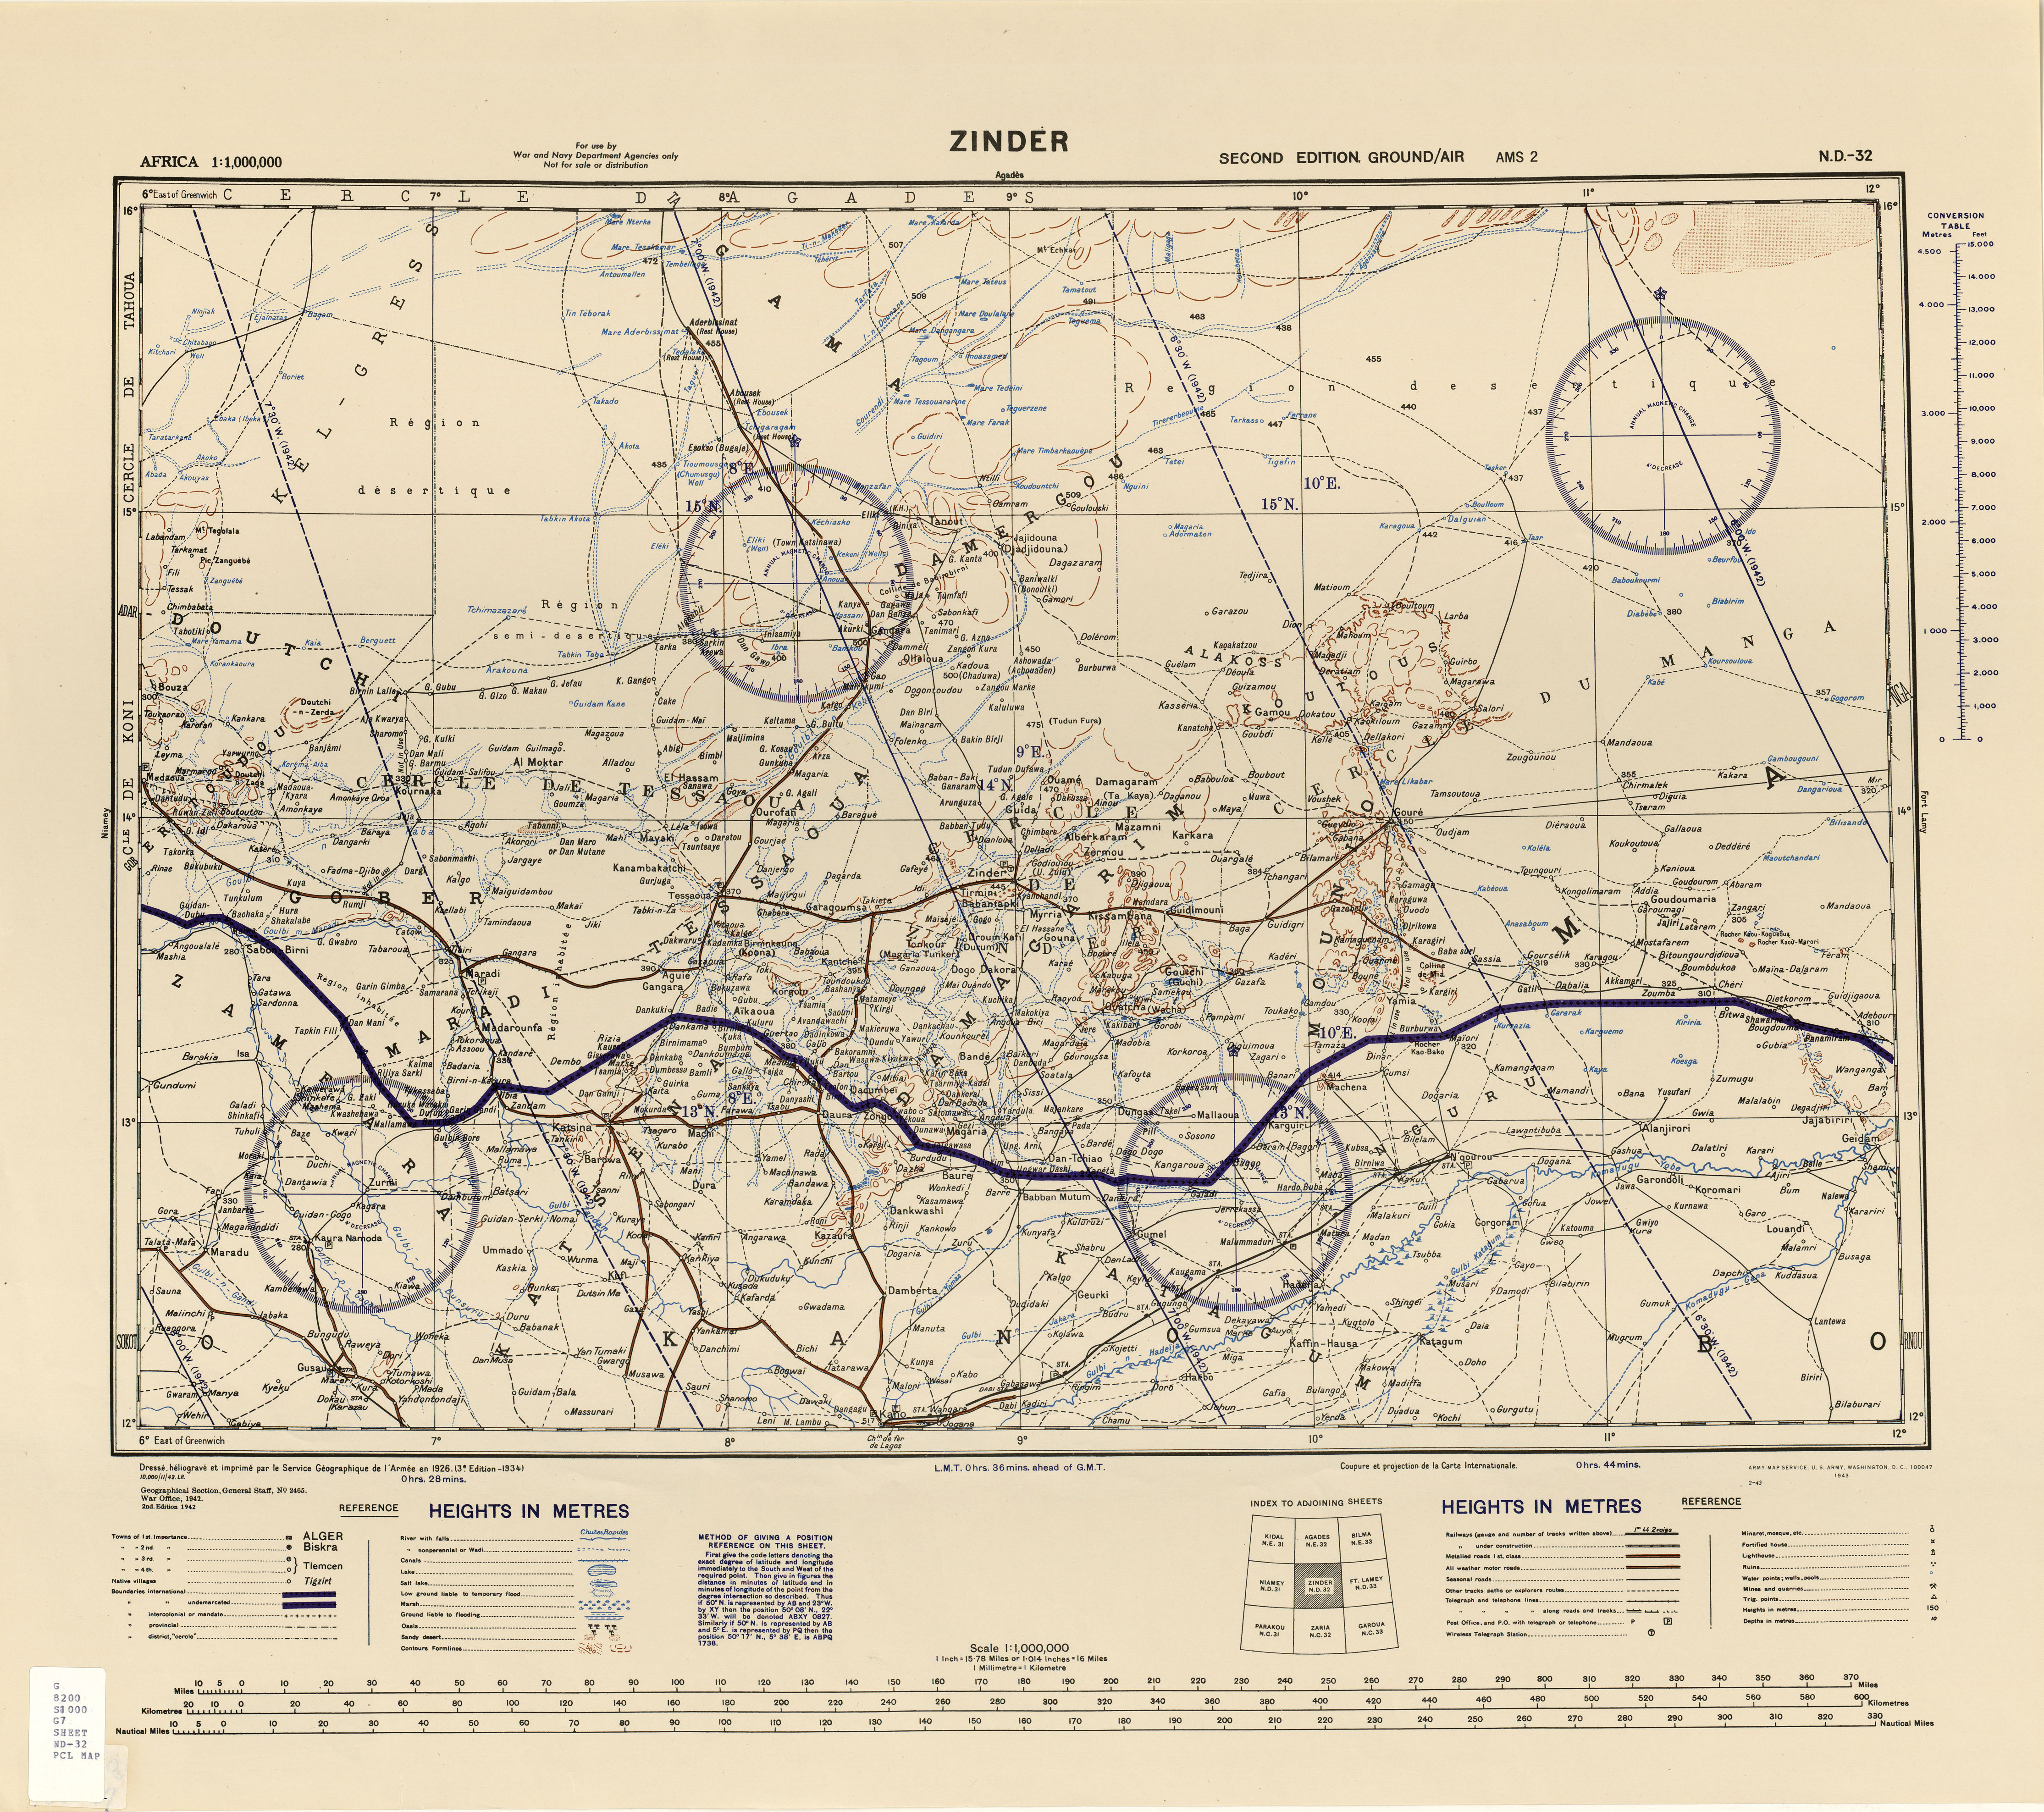 FileZinder by US Army Map Servicejpg Wikimedia Commons